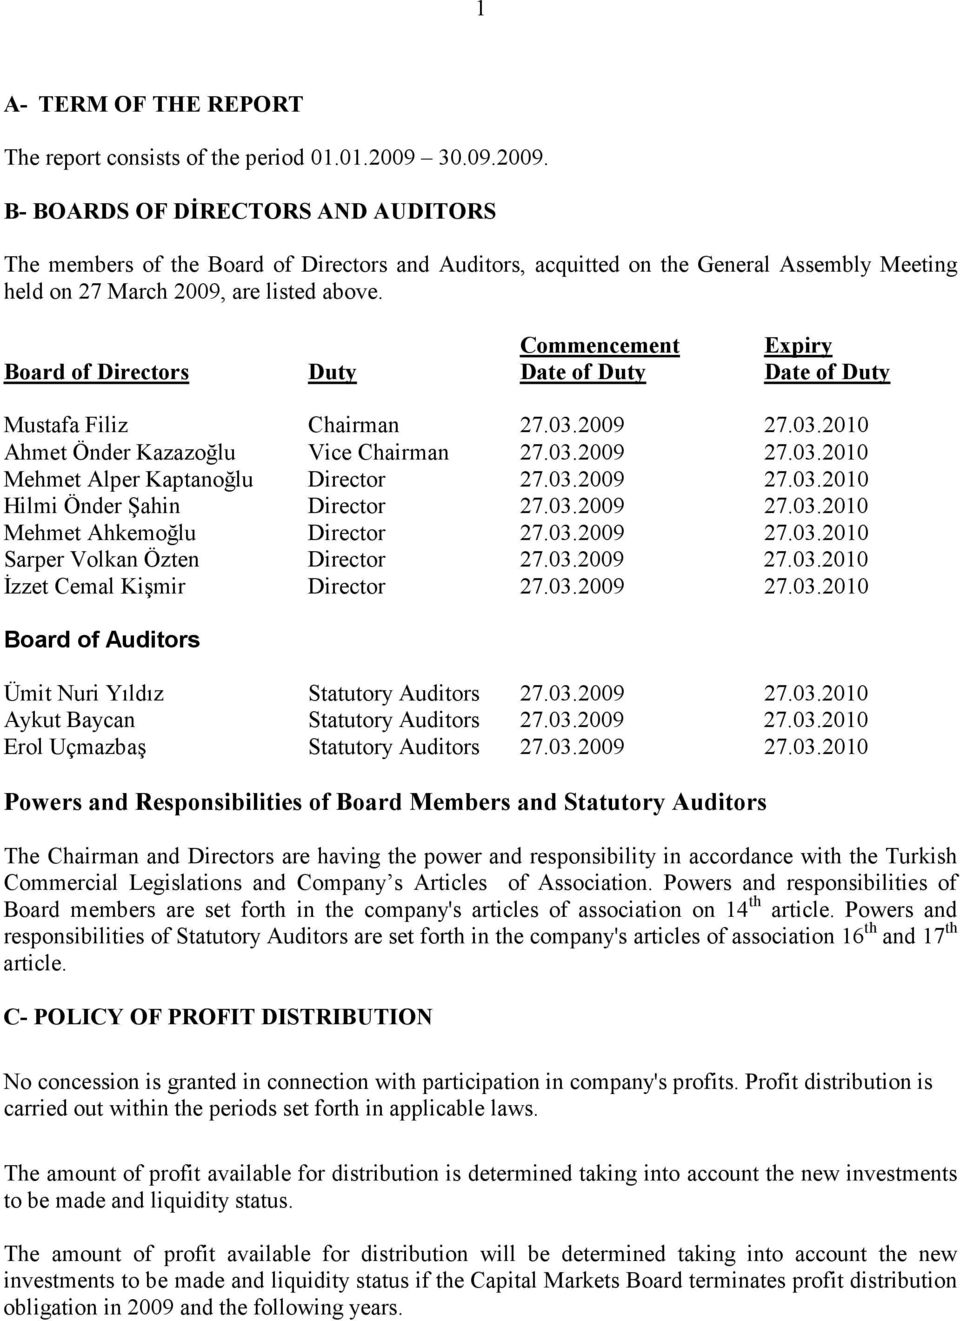 Board of Directors Duty Commencement Date of Duty Expiry Date of Duty Mustafa Filiz Chairman 27.03.2009 27.03.2010 Ahmet Önder Kazazoğlu Vice Chairman 27.03.2009 27.03.2010 Mehmet Alper Kaptanoğlu Director 27.